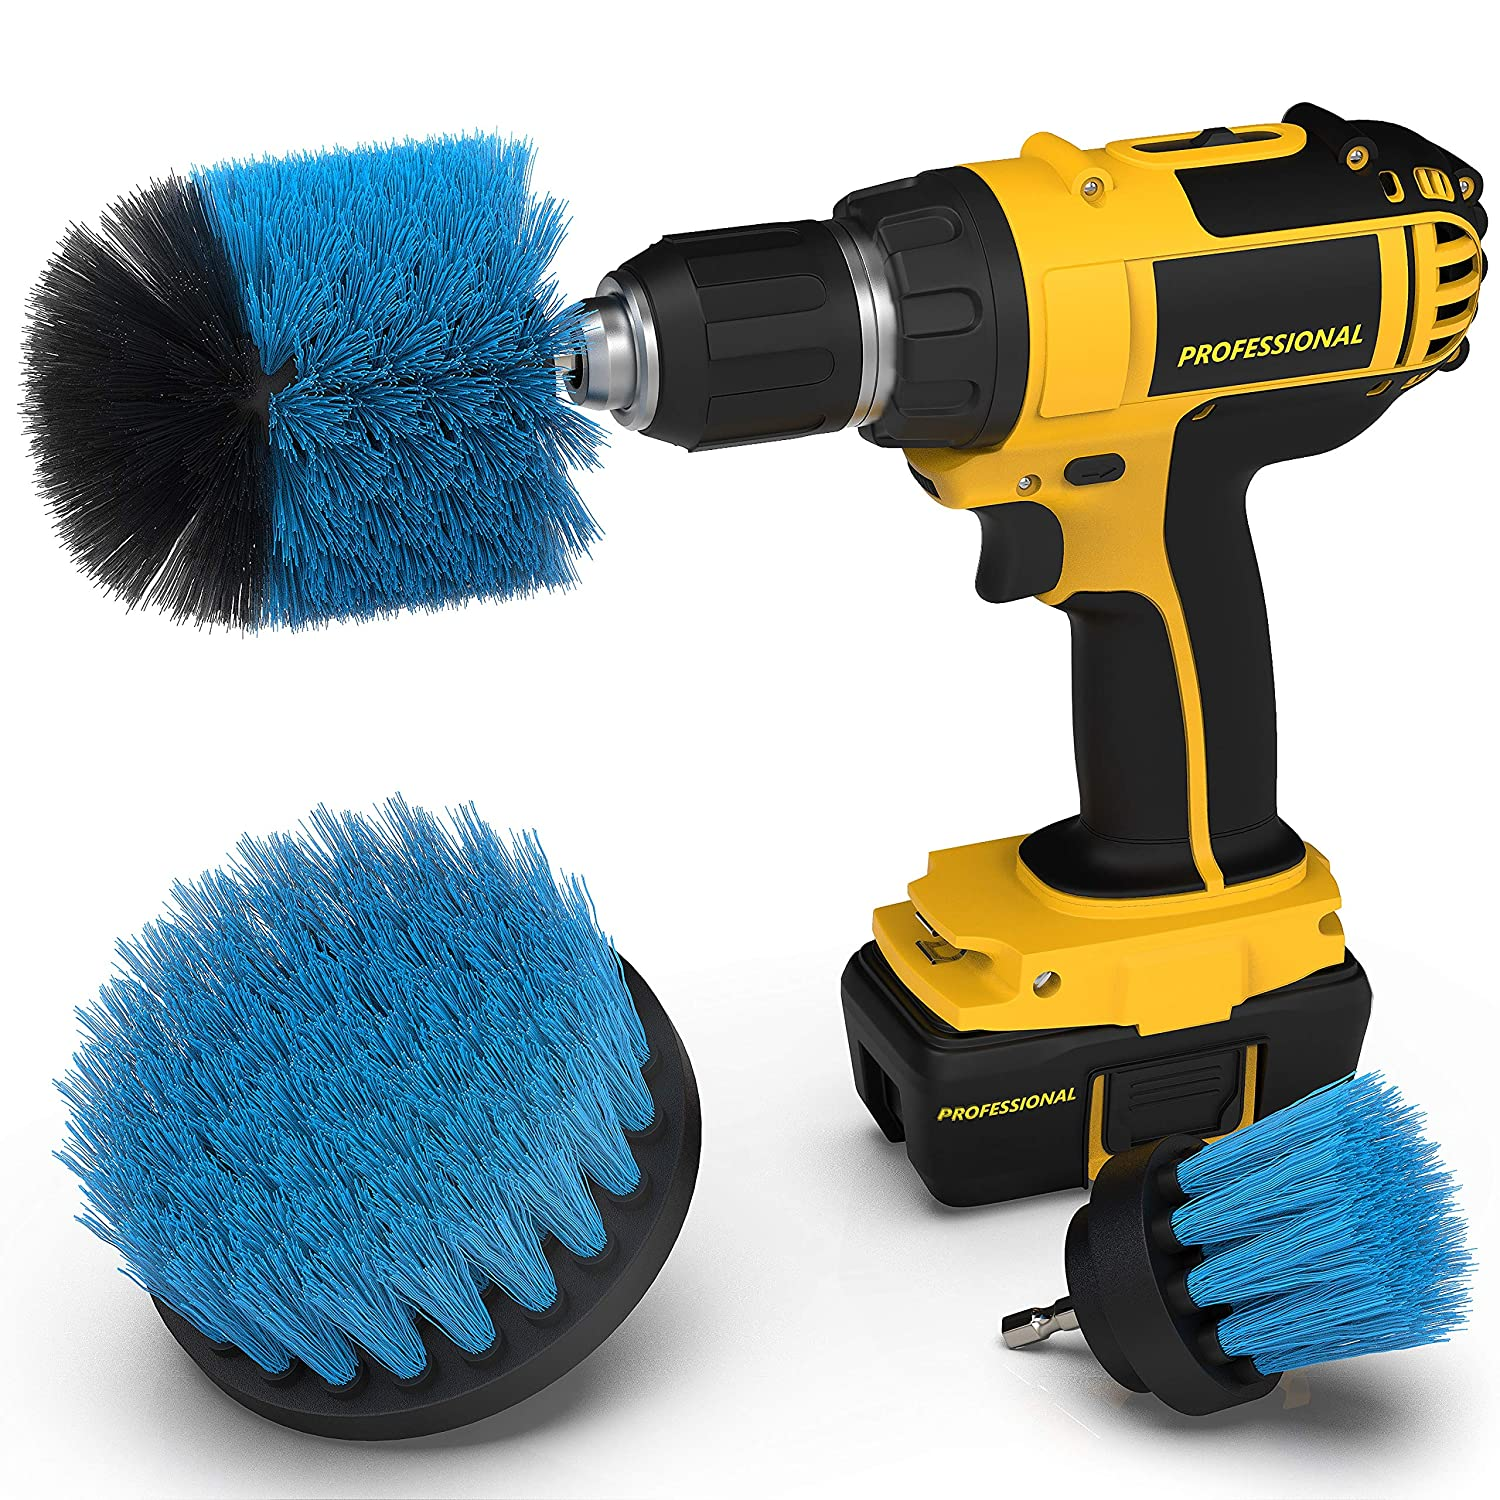 Drill Attachment Power Scrubber – Turbo Scrub Kit of 3 Scrubbing Brushes – All Purpose Shower Door, Bathtub, Toilet, Tile, Grout, Rim, Floor, Carpet, Bathroom and Kitchen Surfaces Cleaner Brison